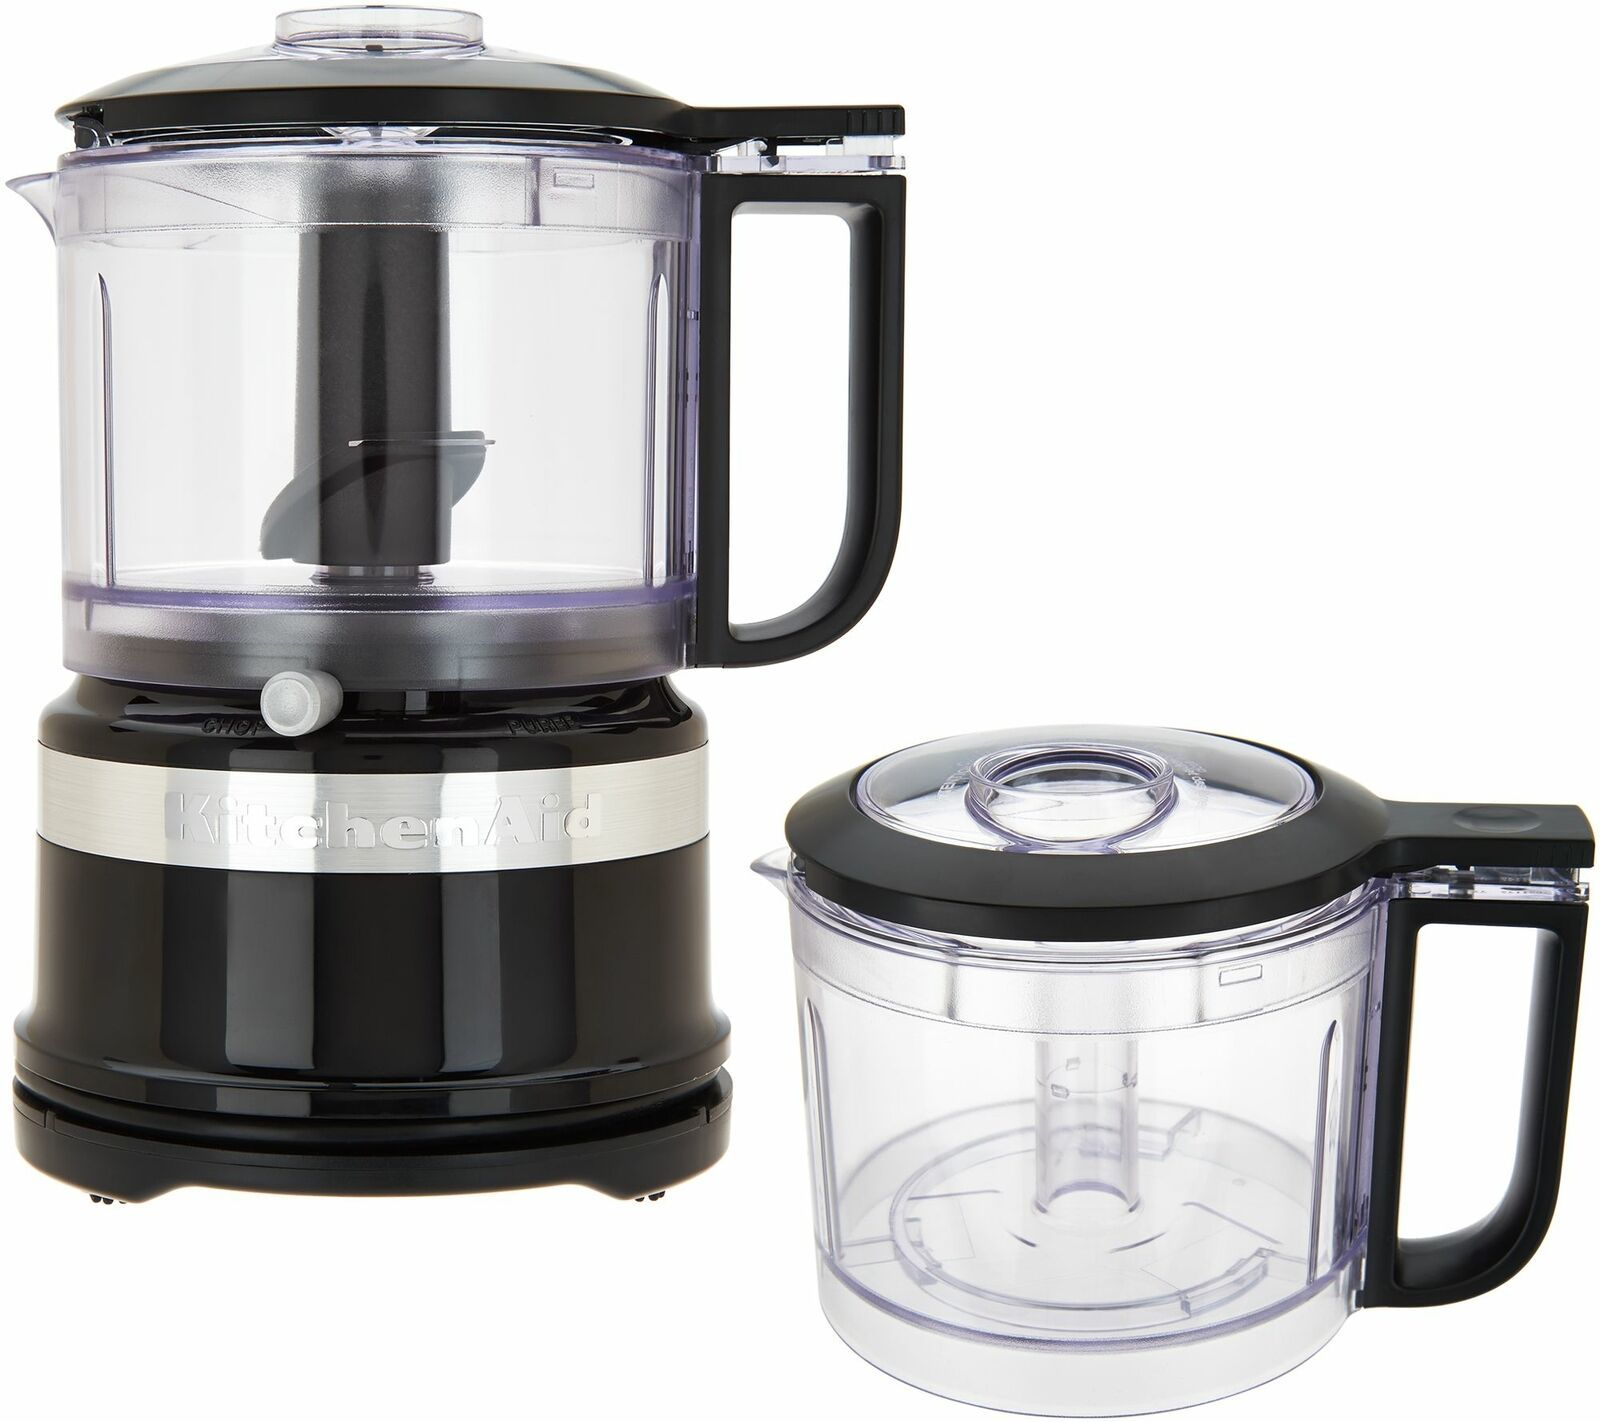 KitchenAid 3.5-Cup One-Touch 2-Speed Chopper w/ Extra Bowl  Black   BP4 - $96.99